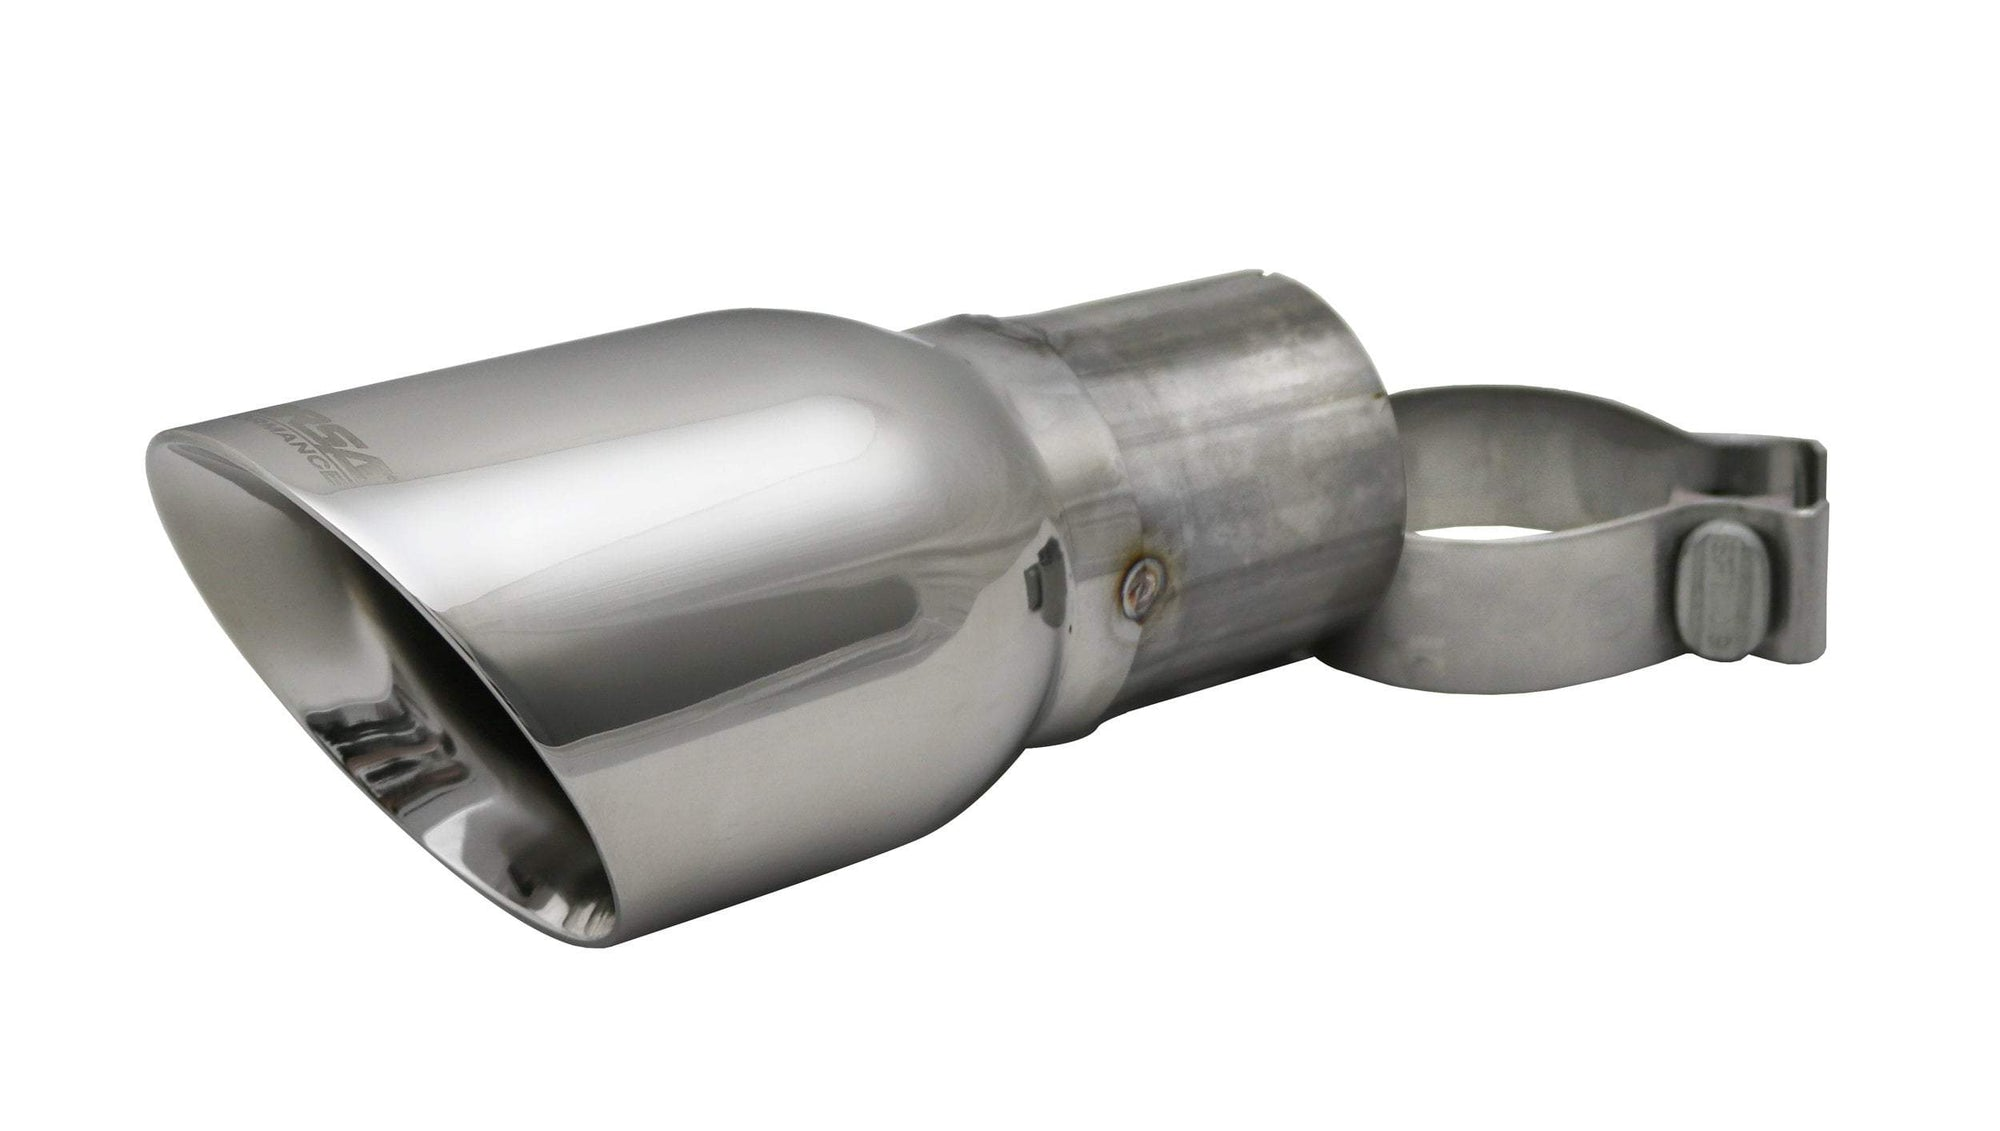 "CORSA PERFORMANCE Tip Kit Polished Tip Kit - Single 4.0"" Tip w/2.75"" diameter pipe (TK005)"